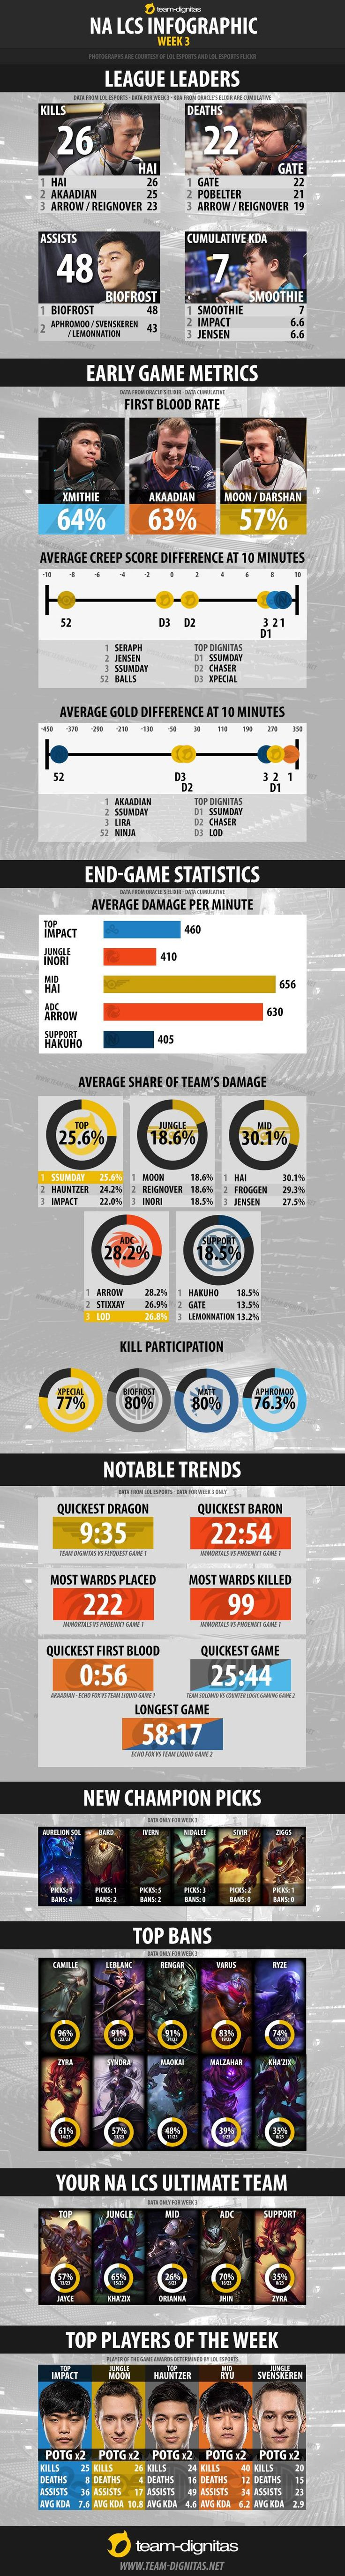 NA LCS Spring Split Infographic - Week 3 http://imgur.com/a/lLbvl #games #LeagueOfLegends #esports #lol #riot #Worlds #gaming